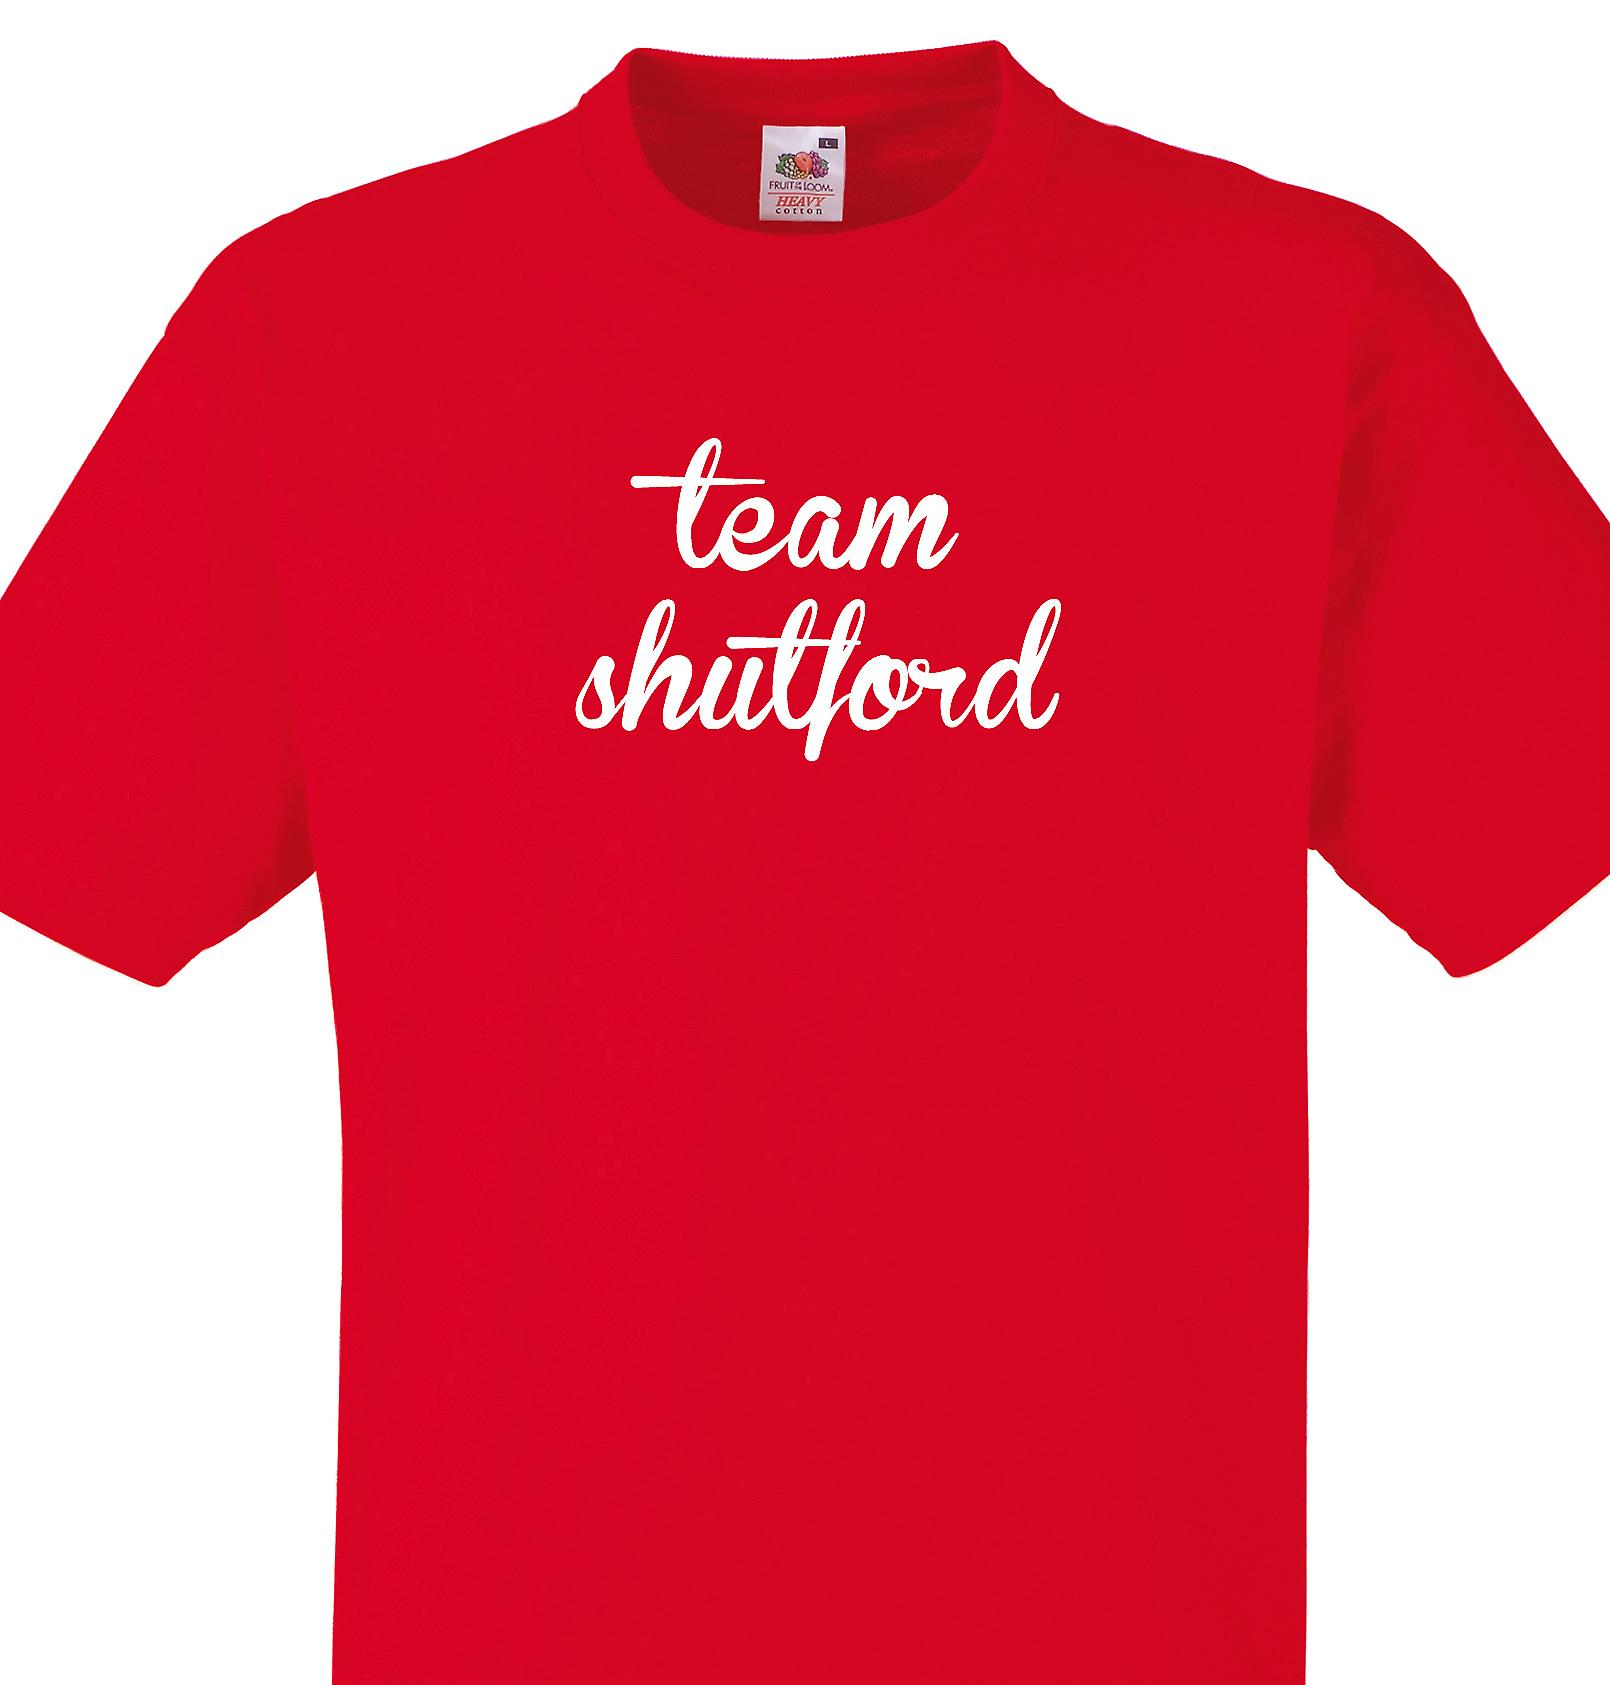 Team Shutford Red T shirt